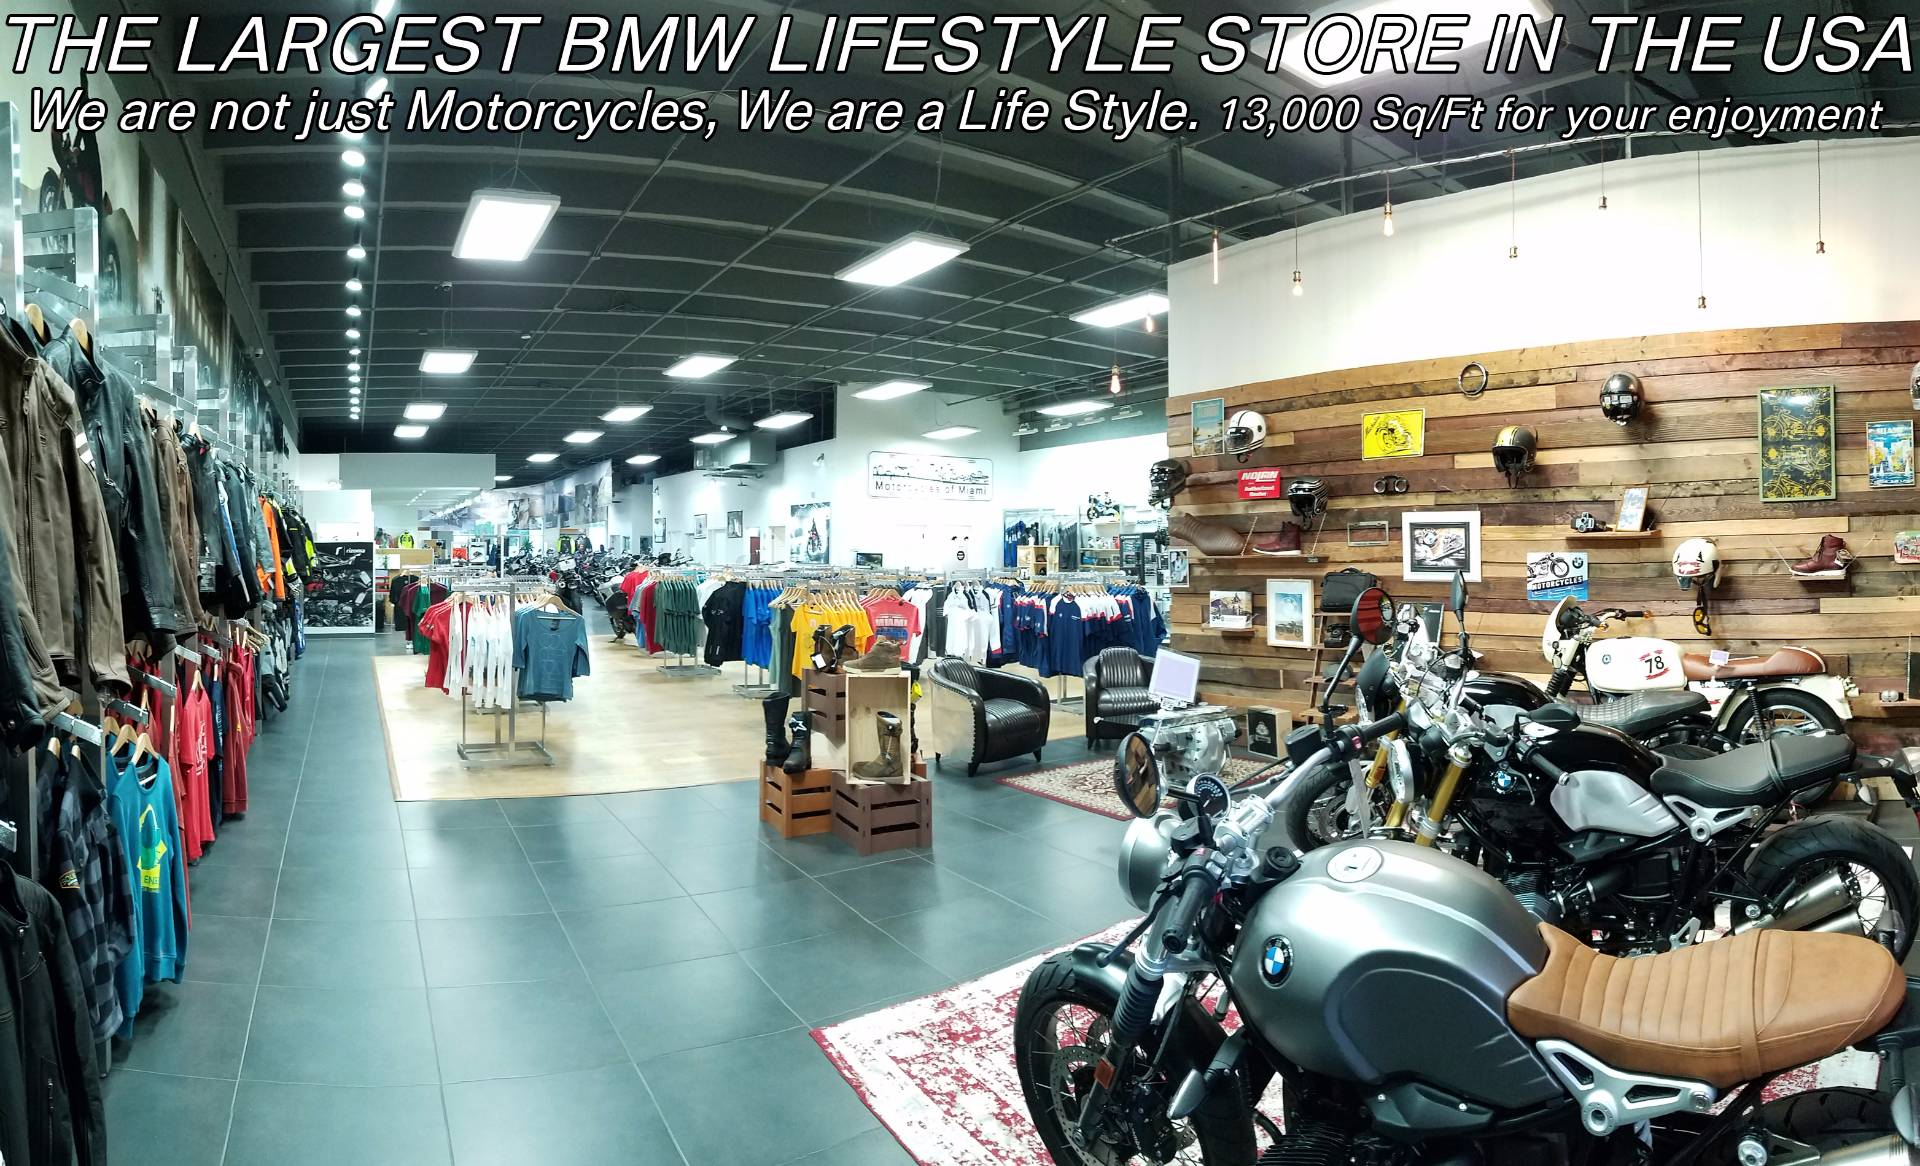 New 2017 BMW S 1000 R For Sale, BMW S 1000 R For Sale, BMW Motorcycle 1000R, new BMW Motorcycle